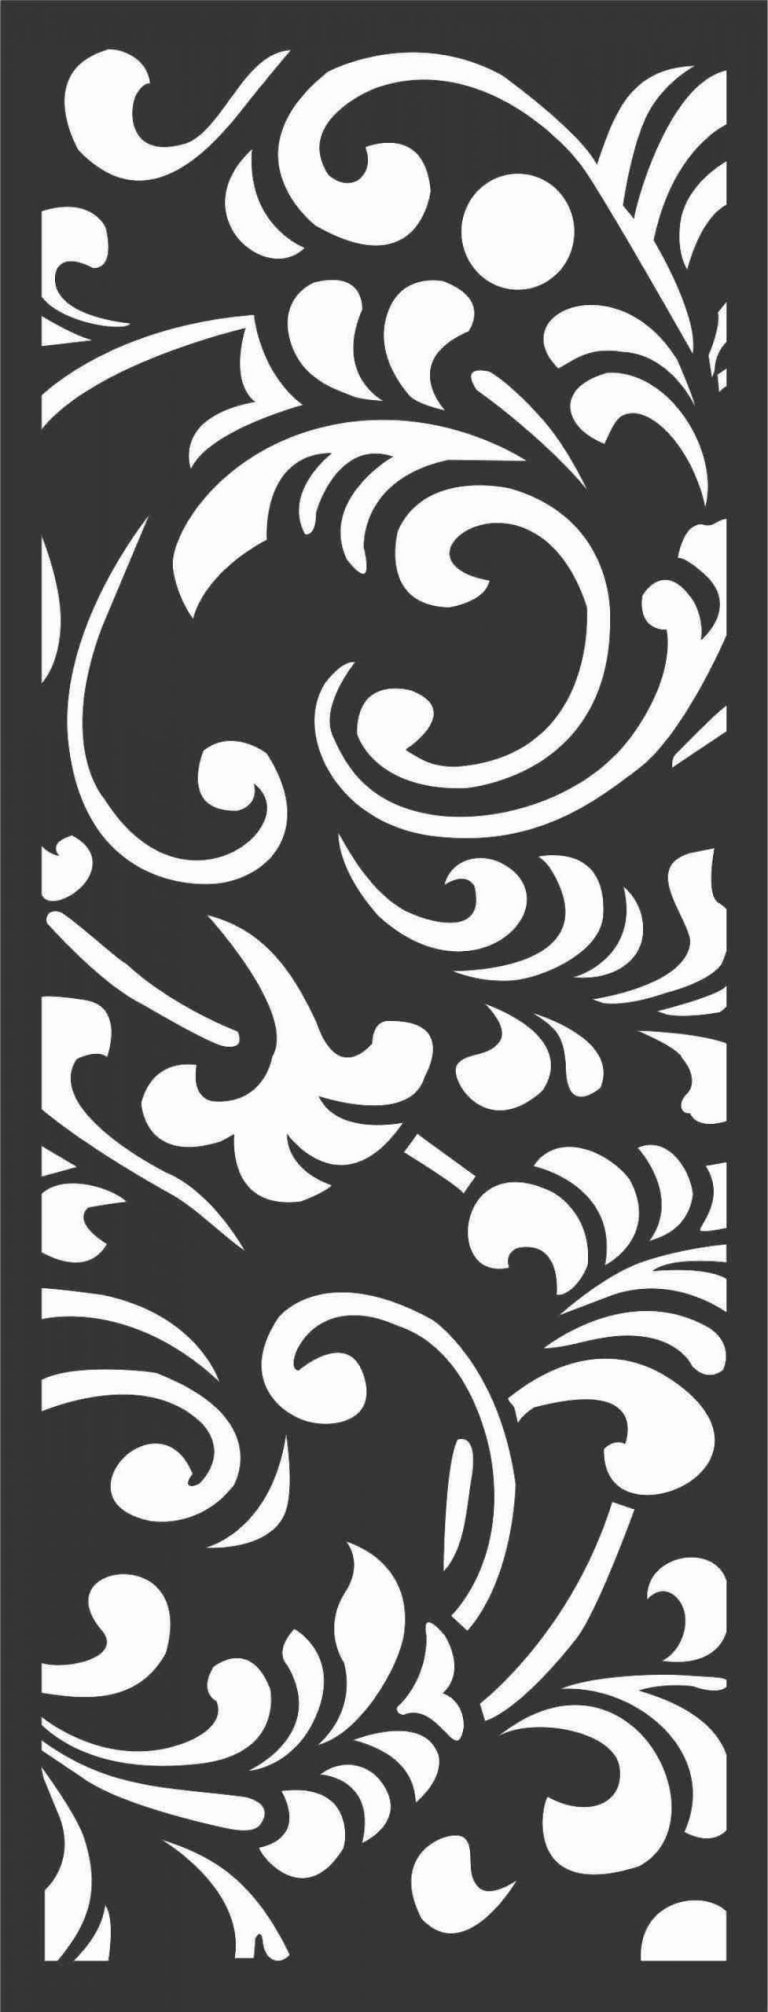 Floral Screen Patterns Design 53 Free DXF File